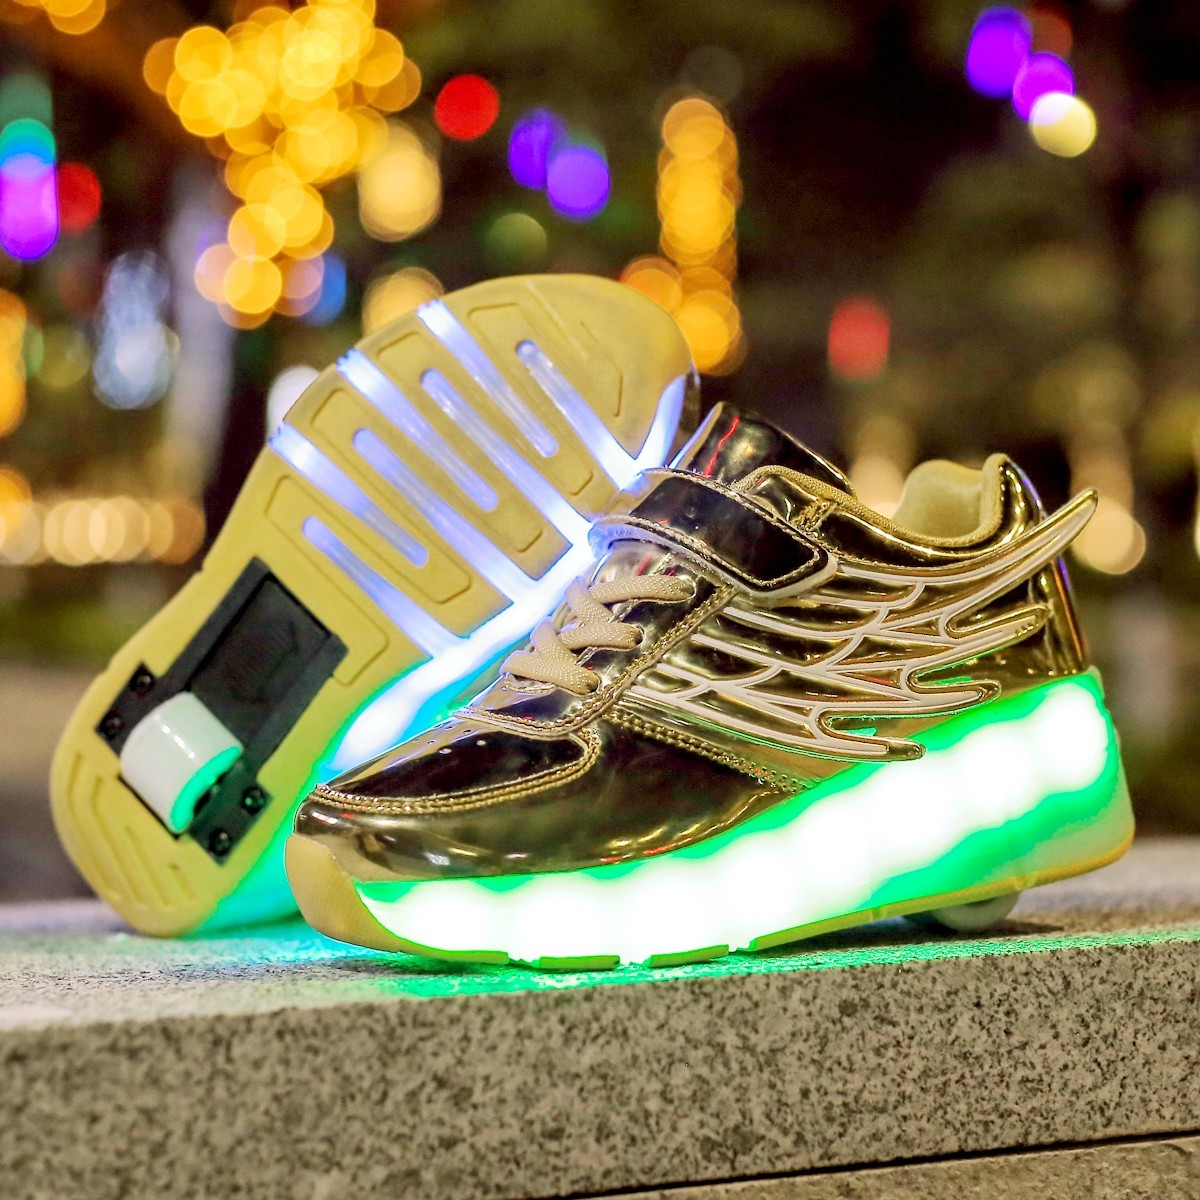 pit4tk Light Up Shoes-Flashing Sneakers Led Shoes Luminous Light Shoes with Rechargeable Sport Shoes for Boys Girls